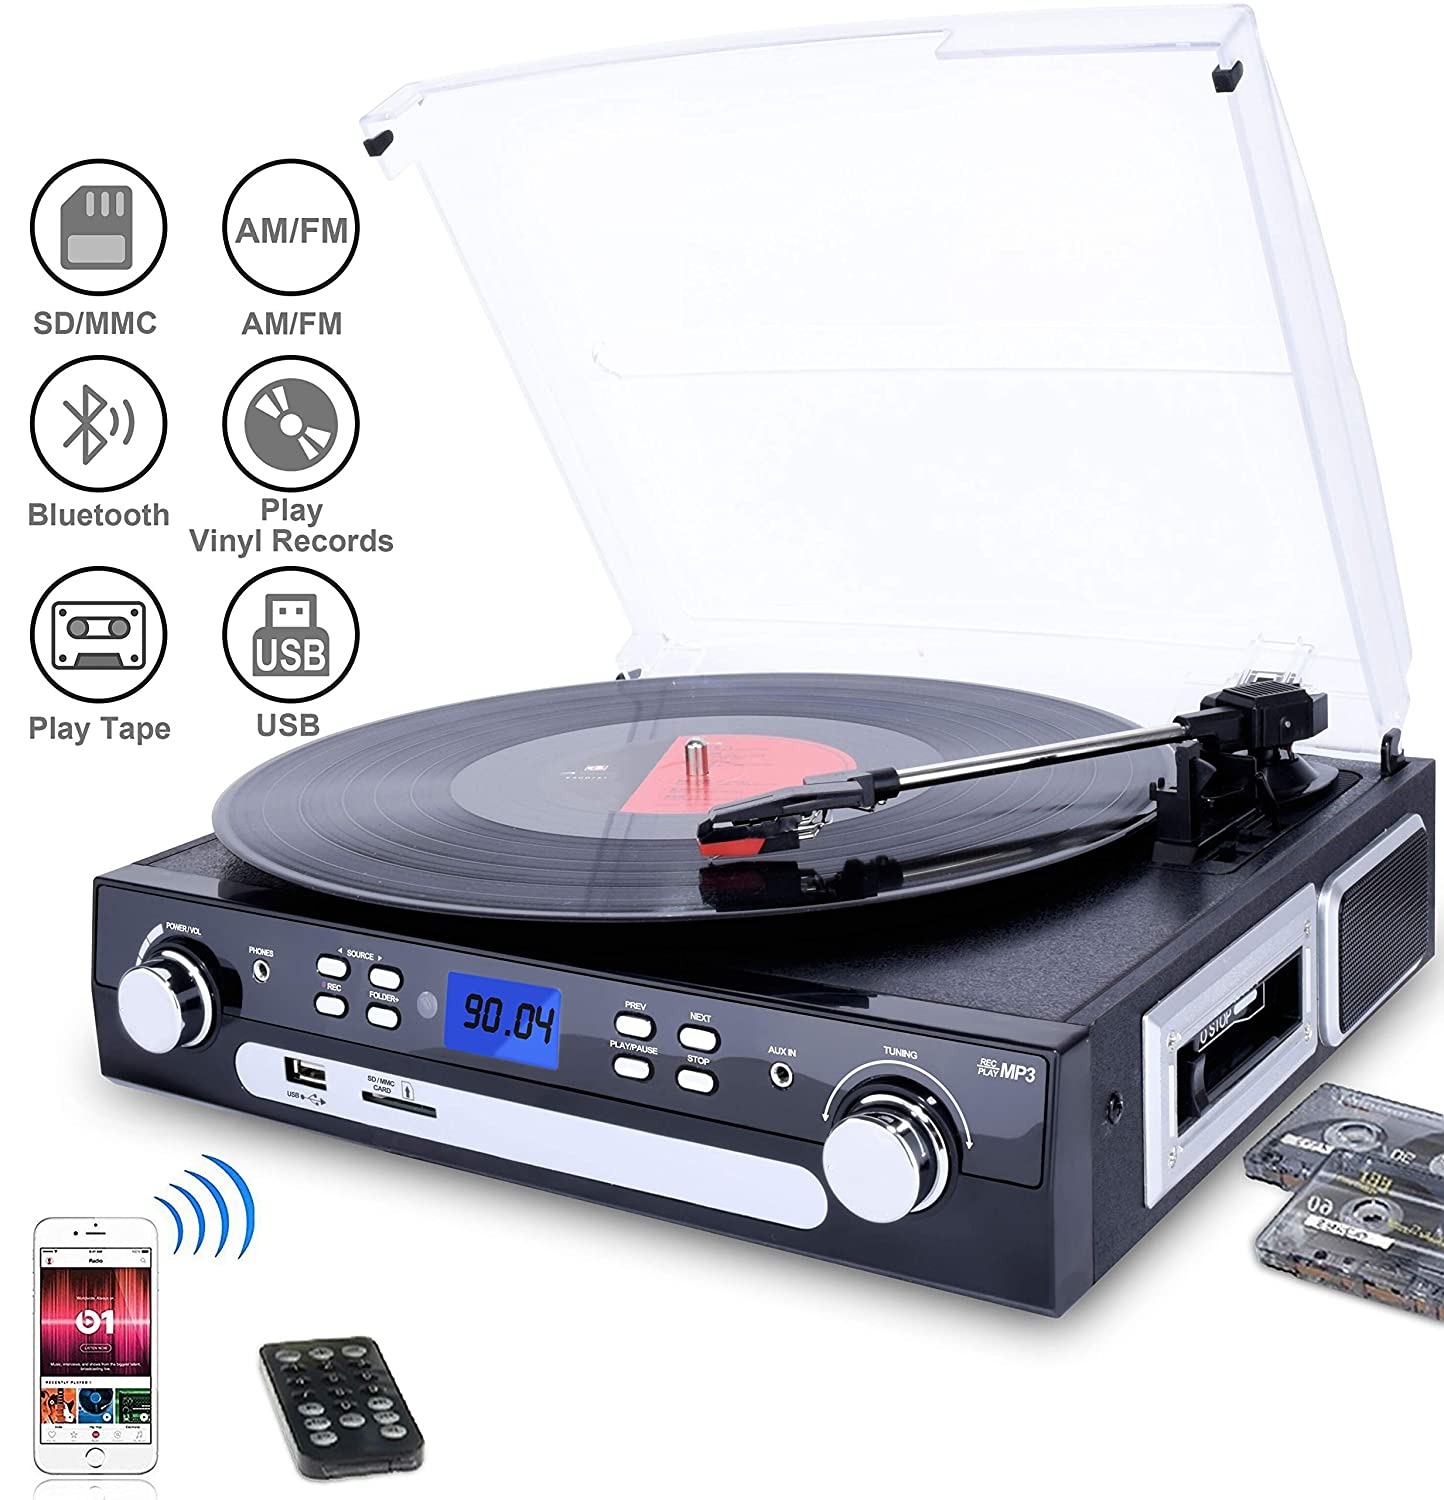 DIGITNOW Vinyl/LP Turntable Record Player, with Bluetooth,AM&FM Radio, Cassette Tape, Aux in, USB/SD Encoding & Playing MP3/ Built-in Stereo Speakers, ...